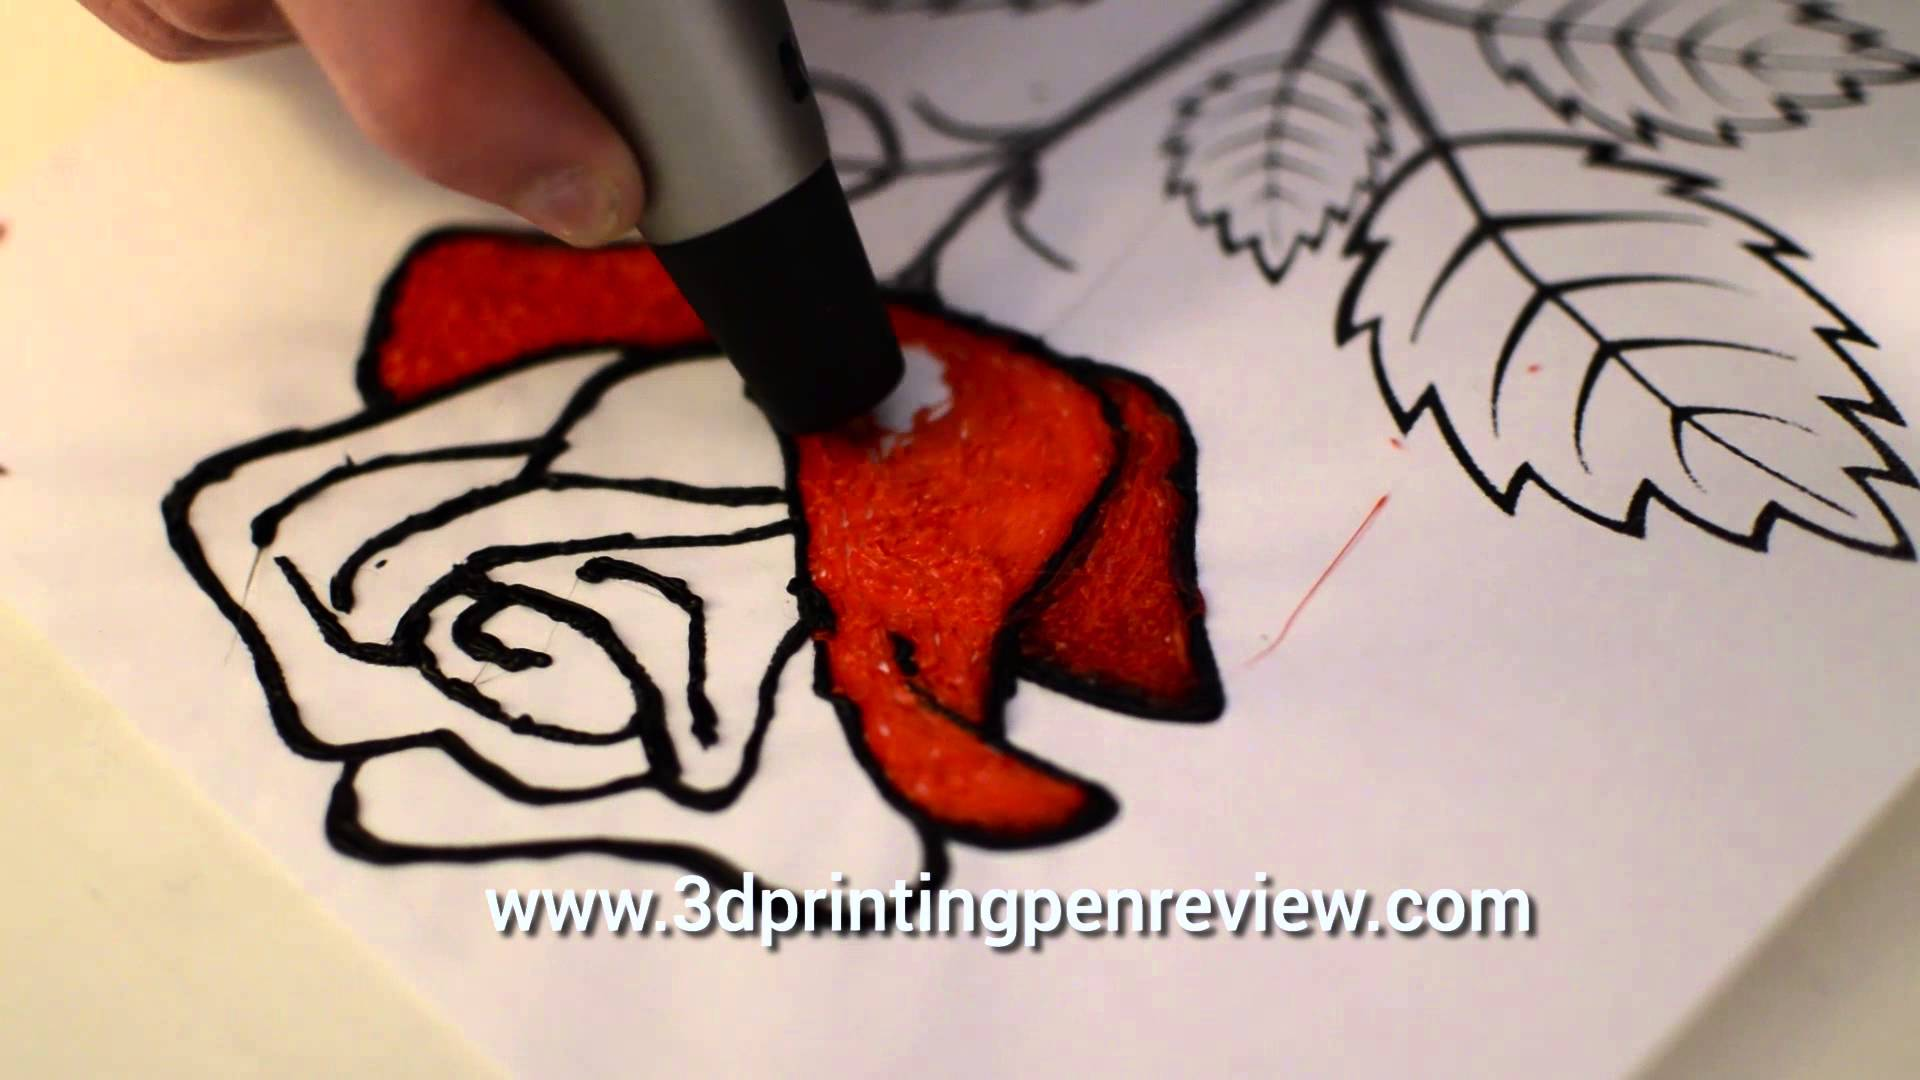 Drawn red rose pen drawing V3 a draw pen draw